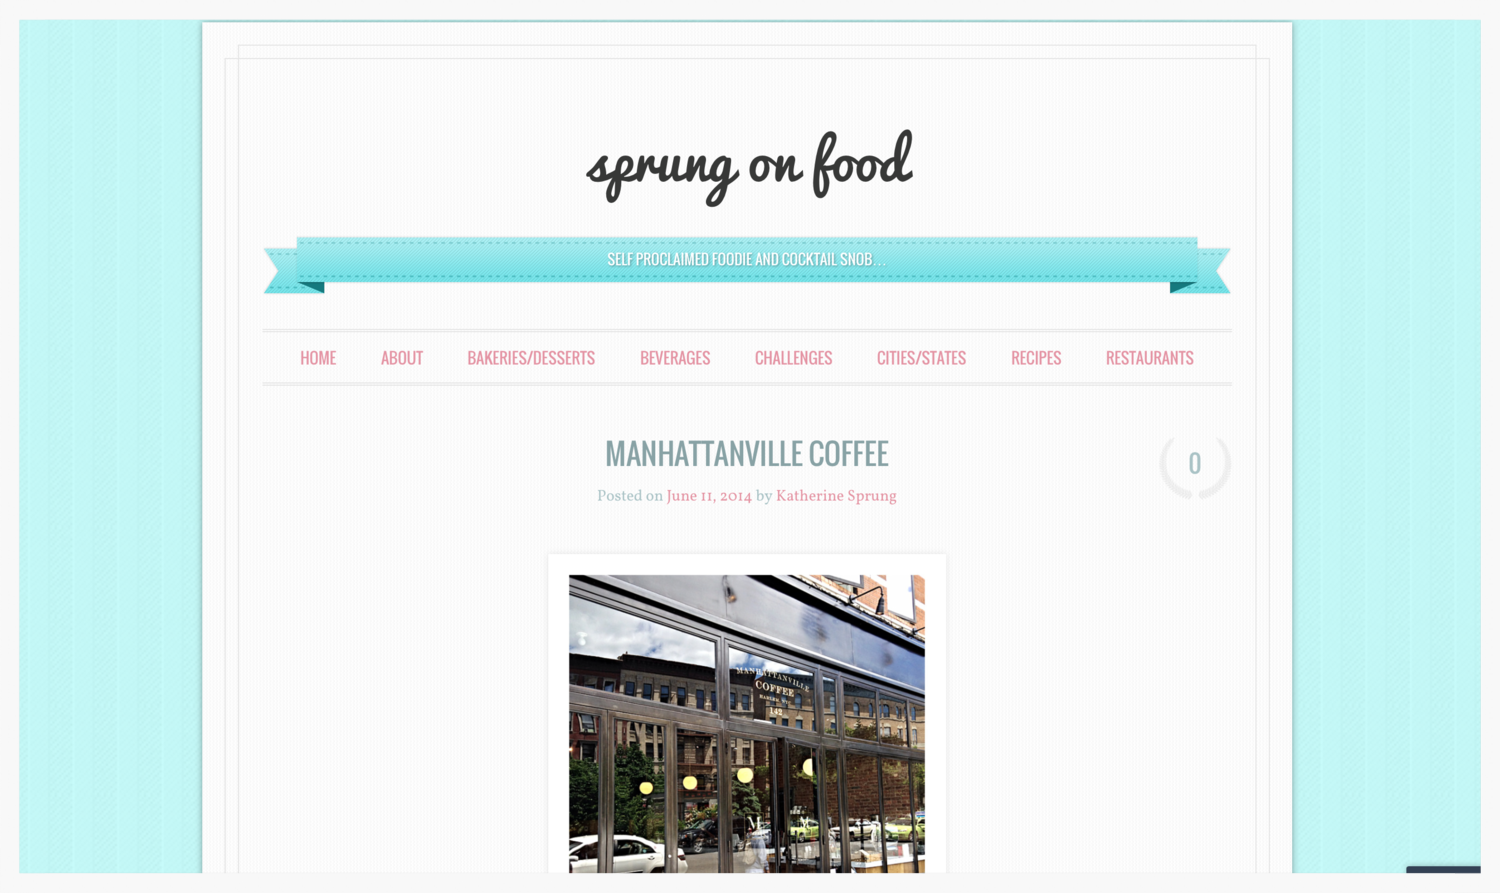 Manhattanville Coffee review by Sprung on Food